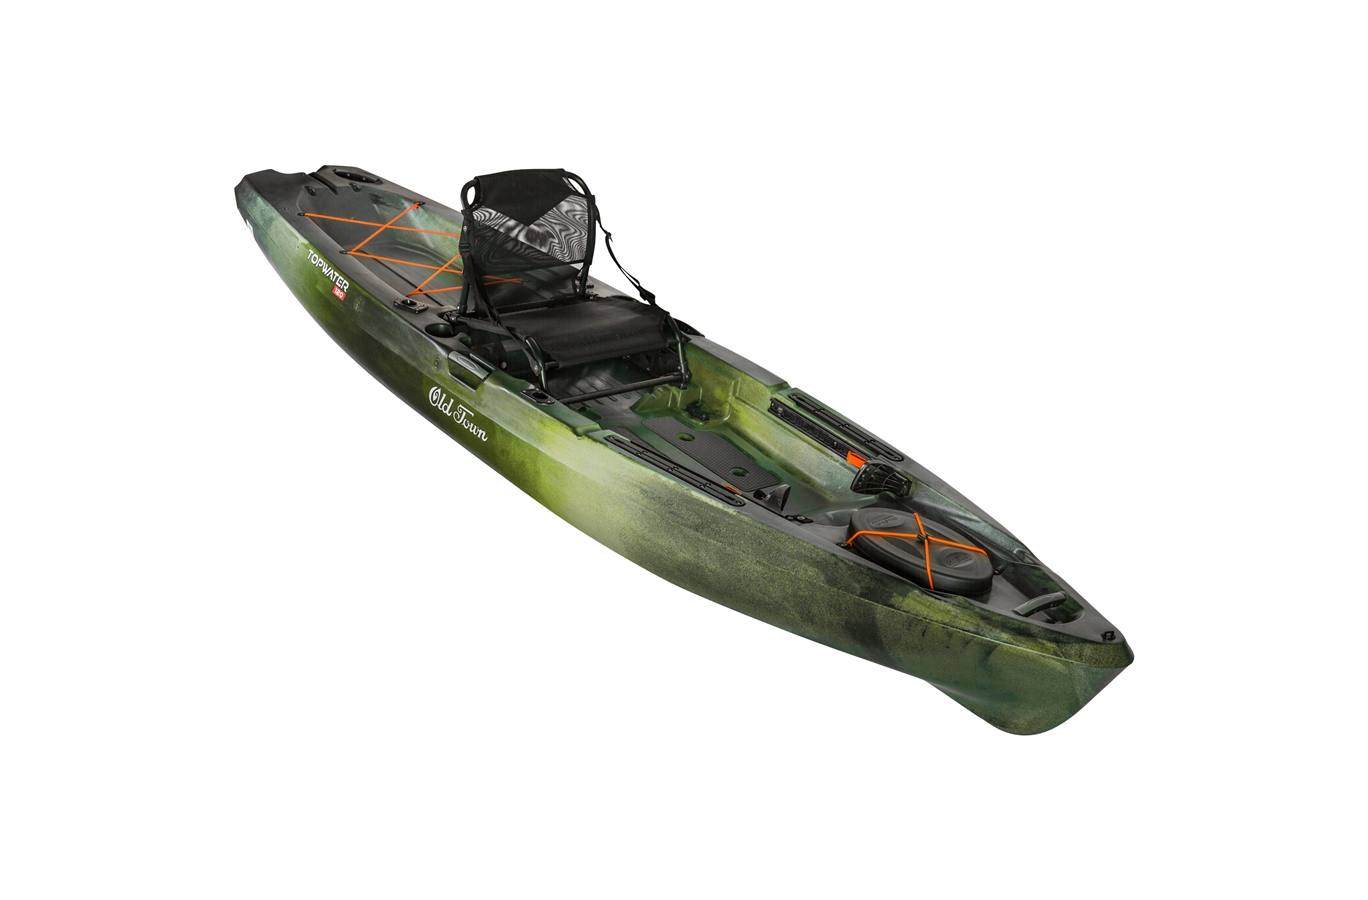 2019 Old Town Canoes and Kayaks Topwater 120 Angler